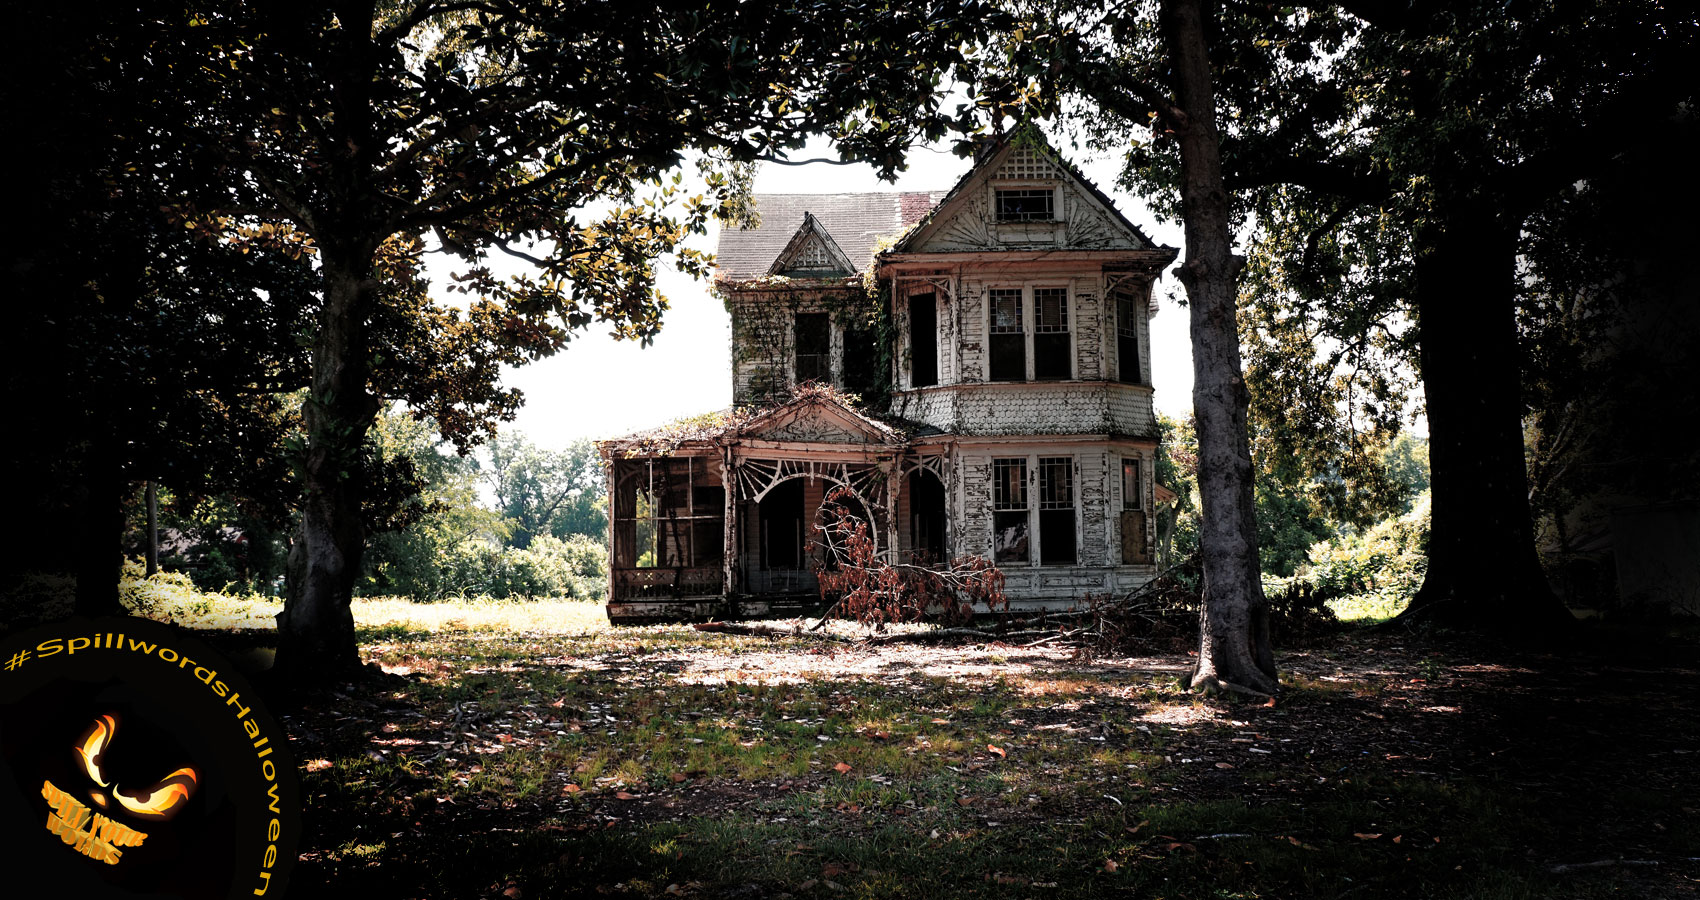 The Mystery House on My Street, by Linda S. Williams at Spillwords.com